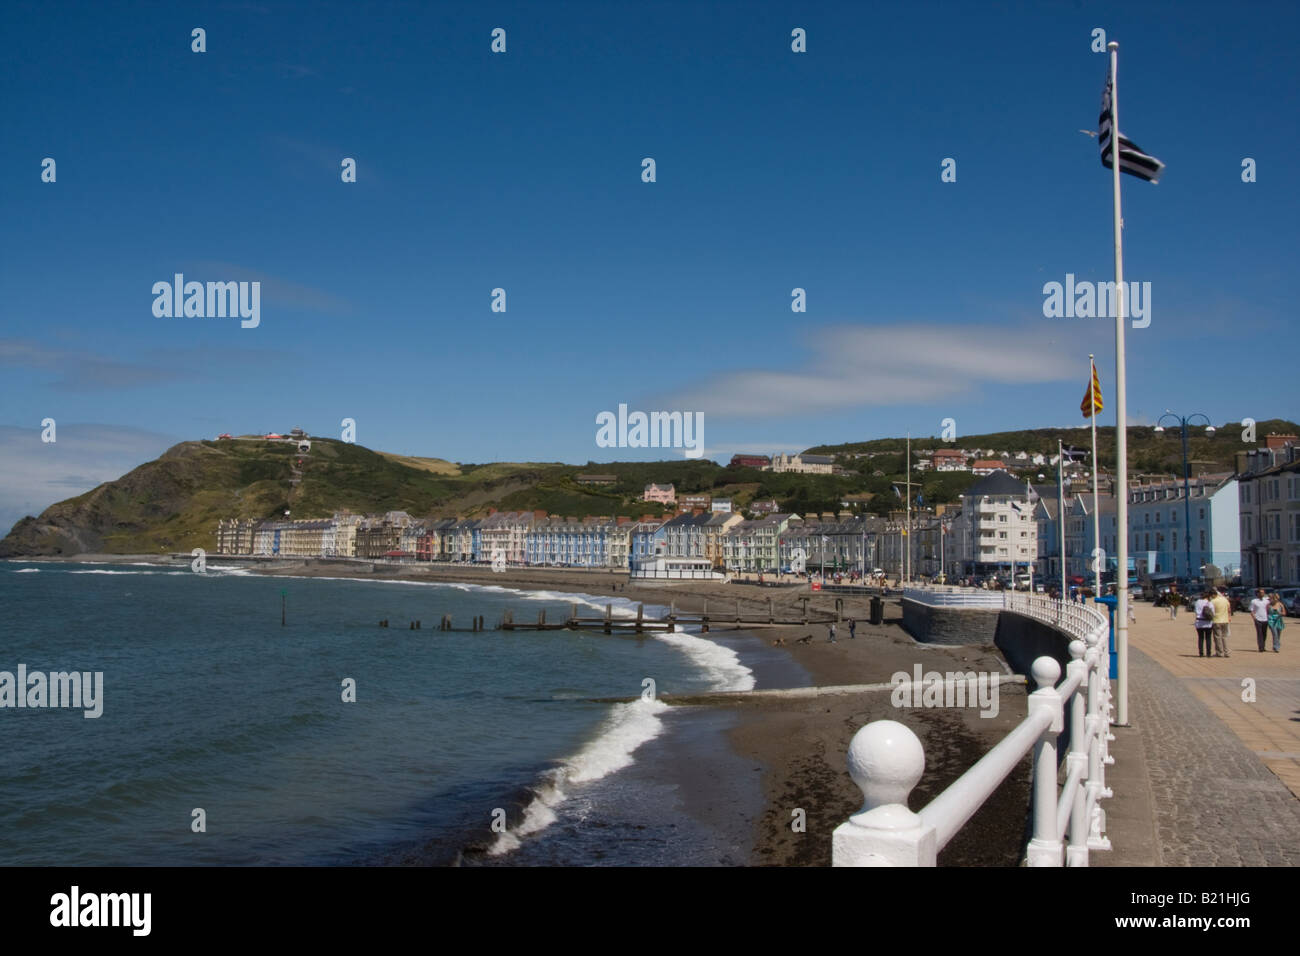 promenade and seaside at aberystwyth mid wales - Stock Image